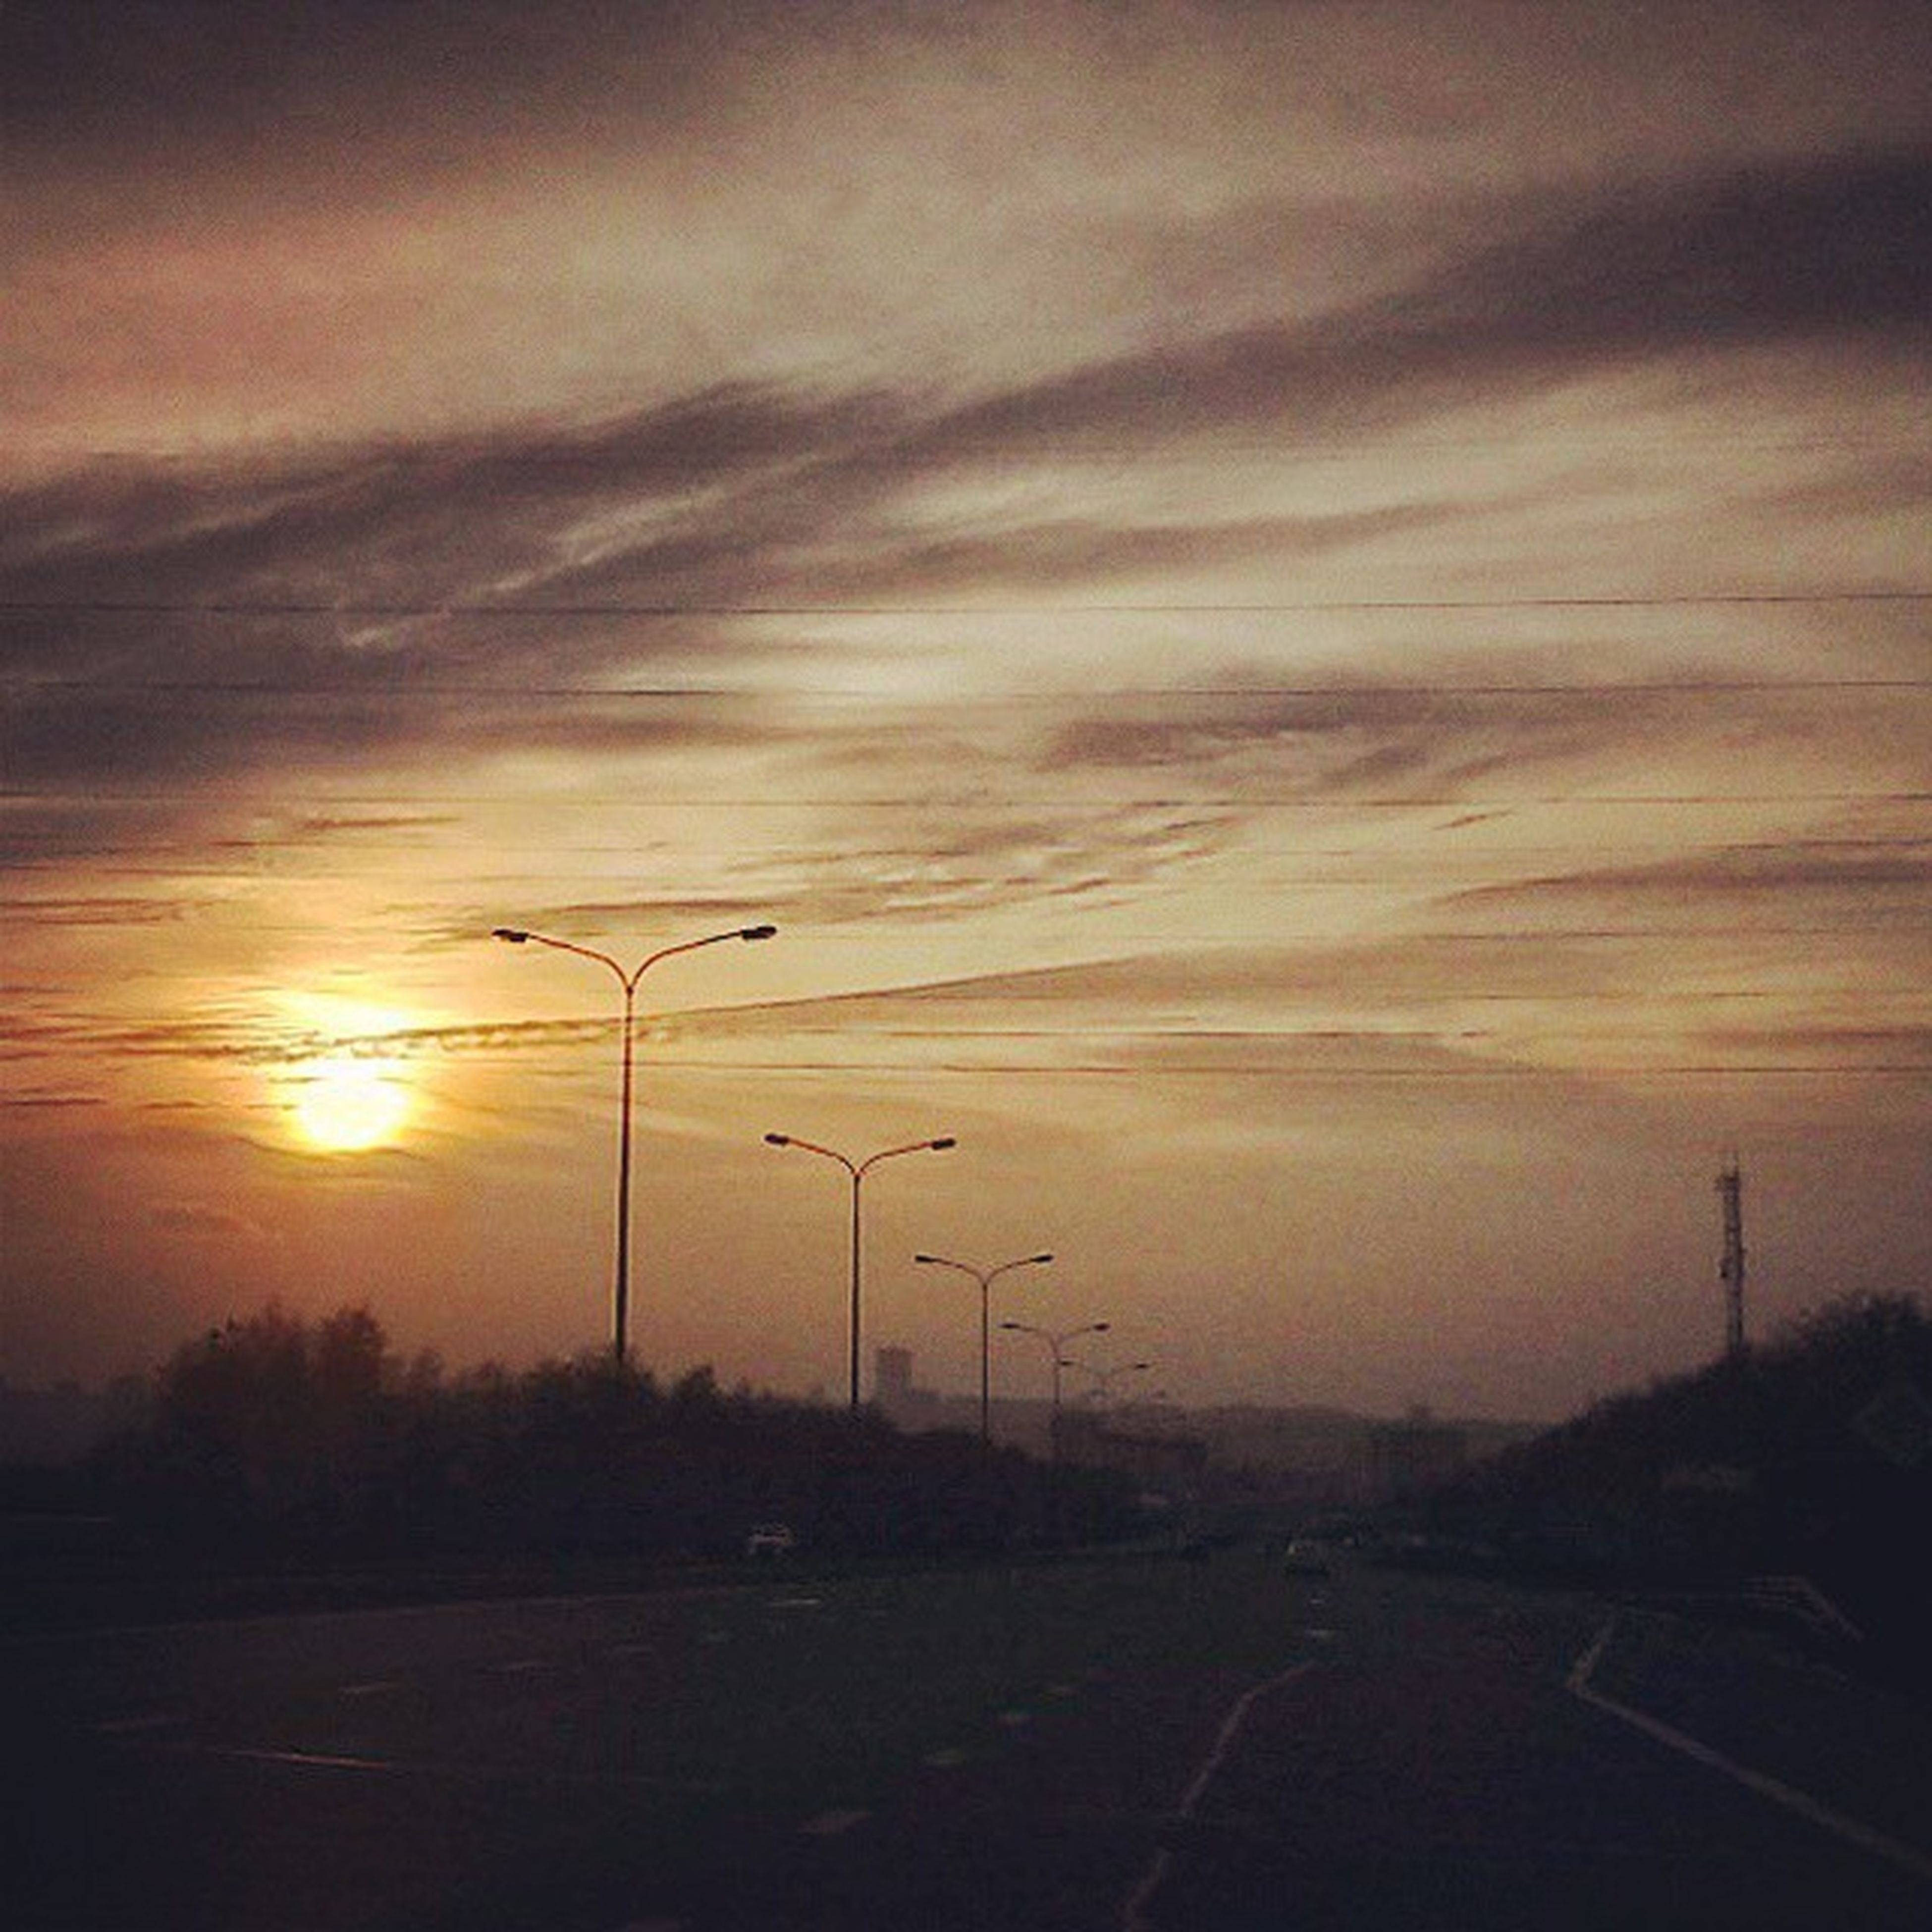 sunset, sky, road, tranquility, electricity pylon, landscape, tranquil scene, scenics, the way forward, silhouette, cloud - sky, beauty in nature, nature, orange color, street light, transportation, power line, electricity, idyllic, cloudy